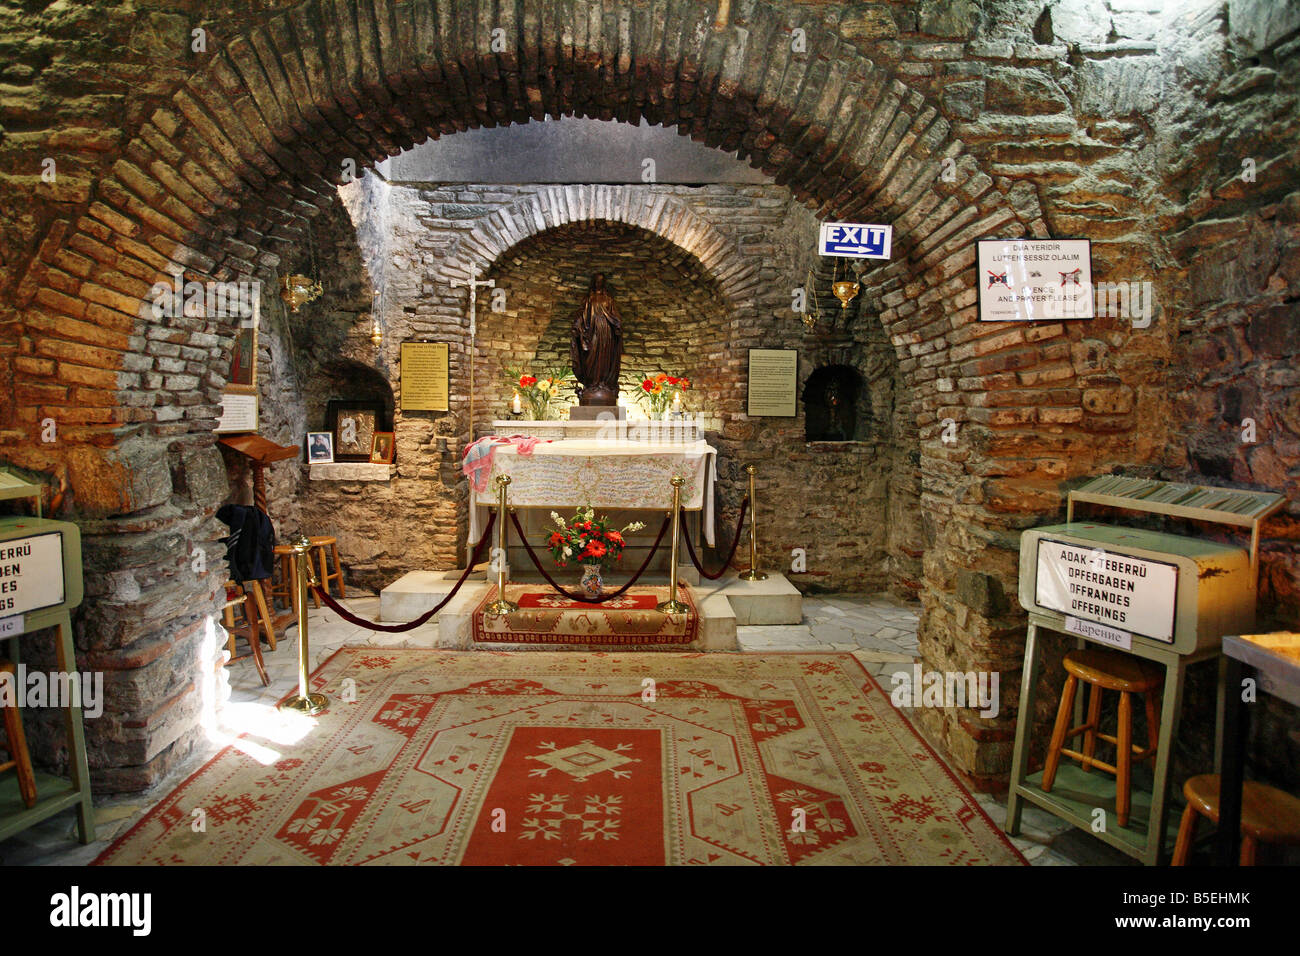 Interior of the House of the Virgin Mary, Ephesus, Turkey Stock Photo